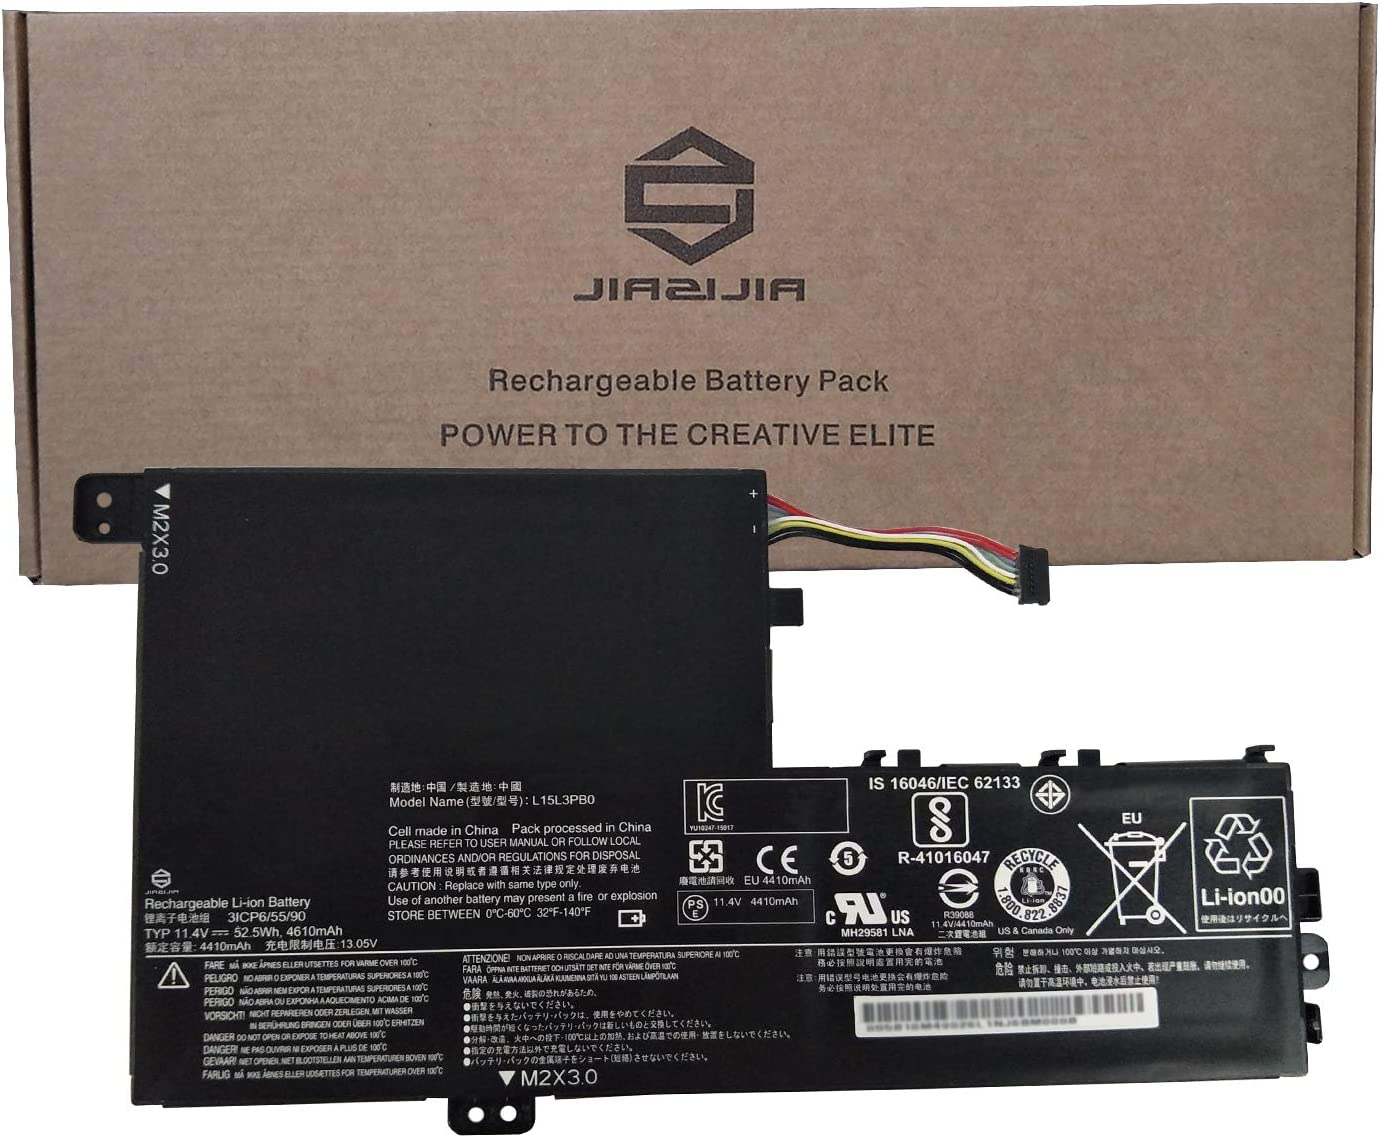 JIAZIJIA L15L3PB0 Laptop Battery Replacement for Lenovo Flex 5 1470 1570 IdeaPad 320S-14IKB 320S-15ABR 320S-15AST 320S-15IKB 320S-15ISK 520S-14IKB Yoga 520-14IKB Series L15M3PB0 Type-A 11.4V 52.5Wh